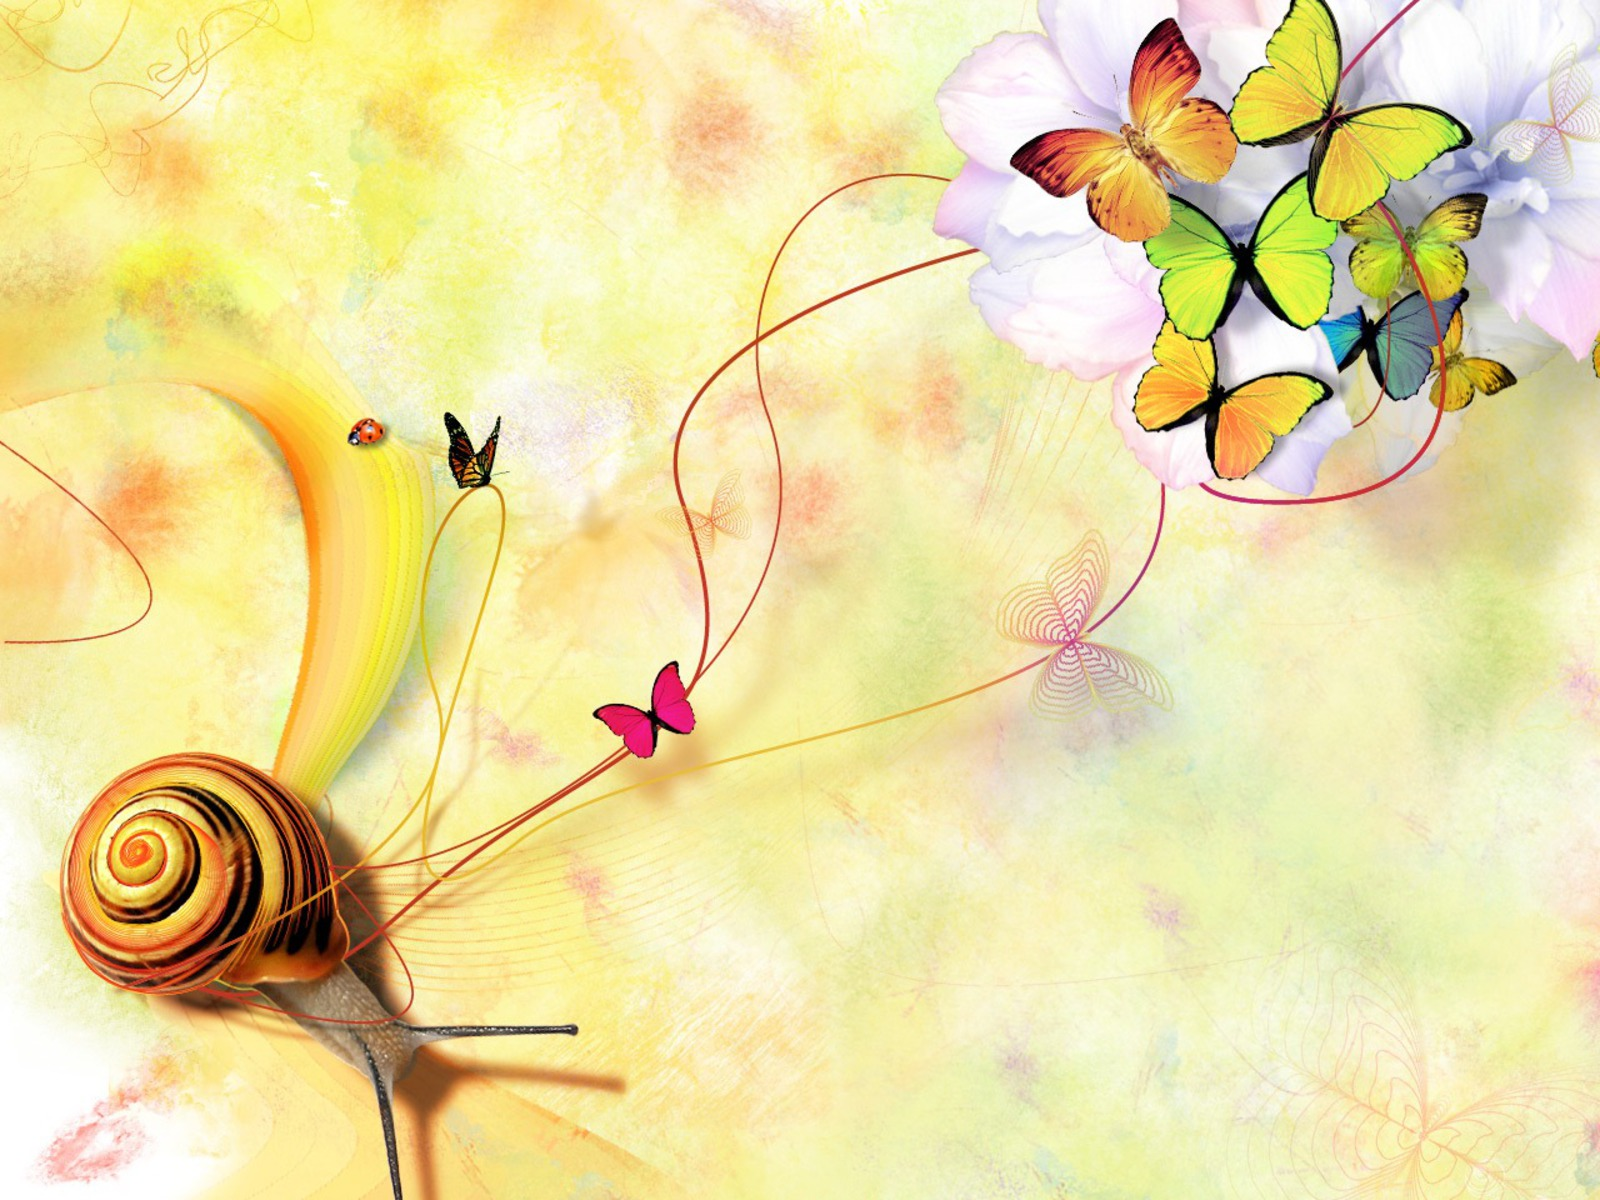 butterfly wallpapers best wallpapers On butterfly wallpaper for walls